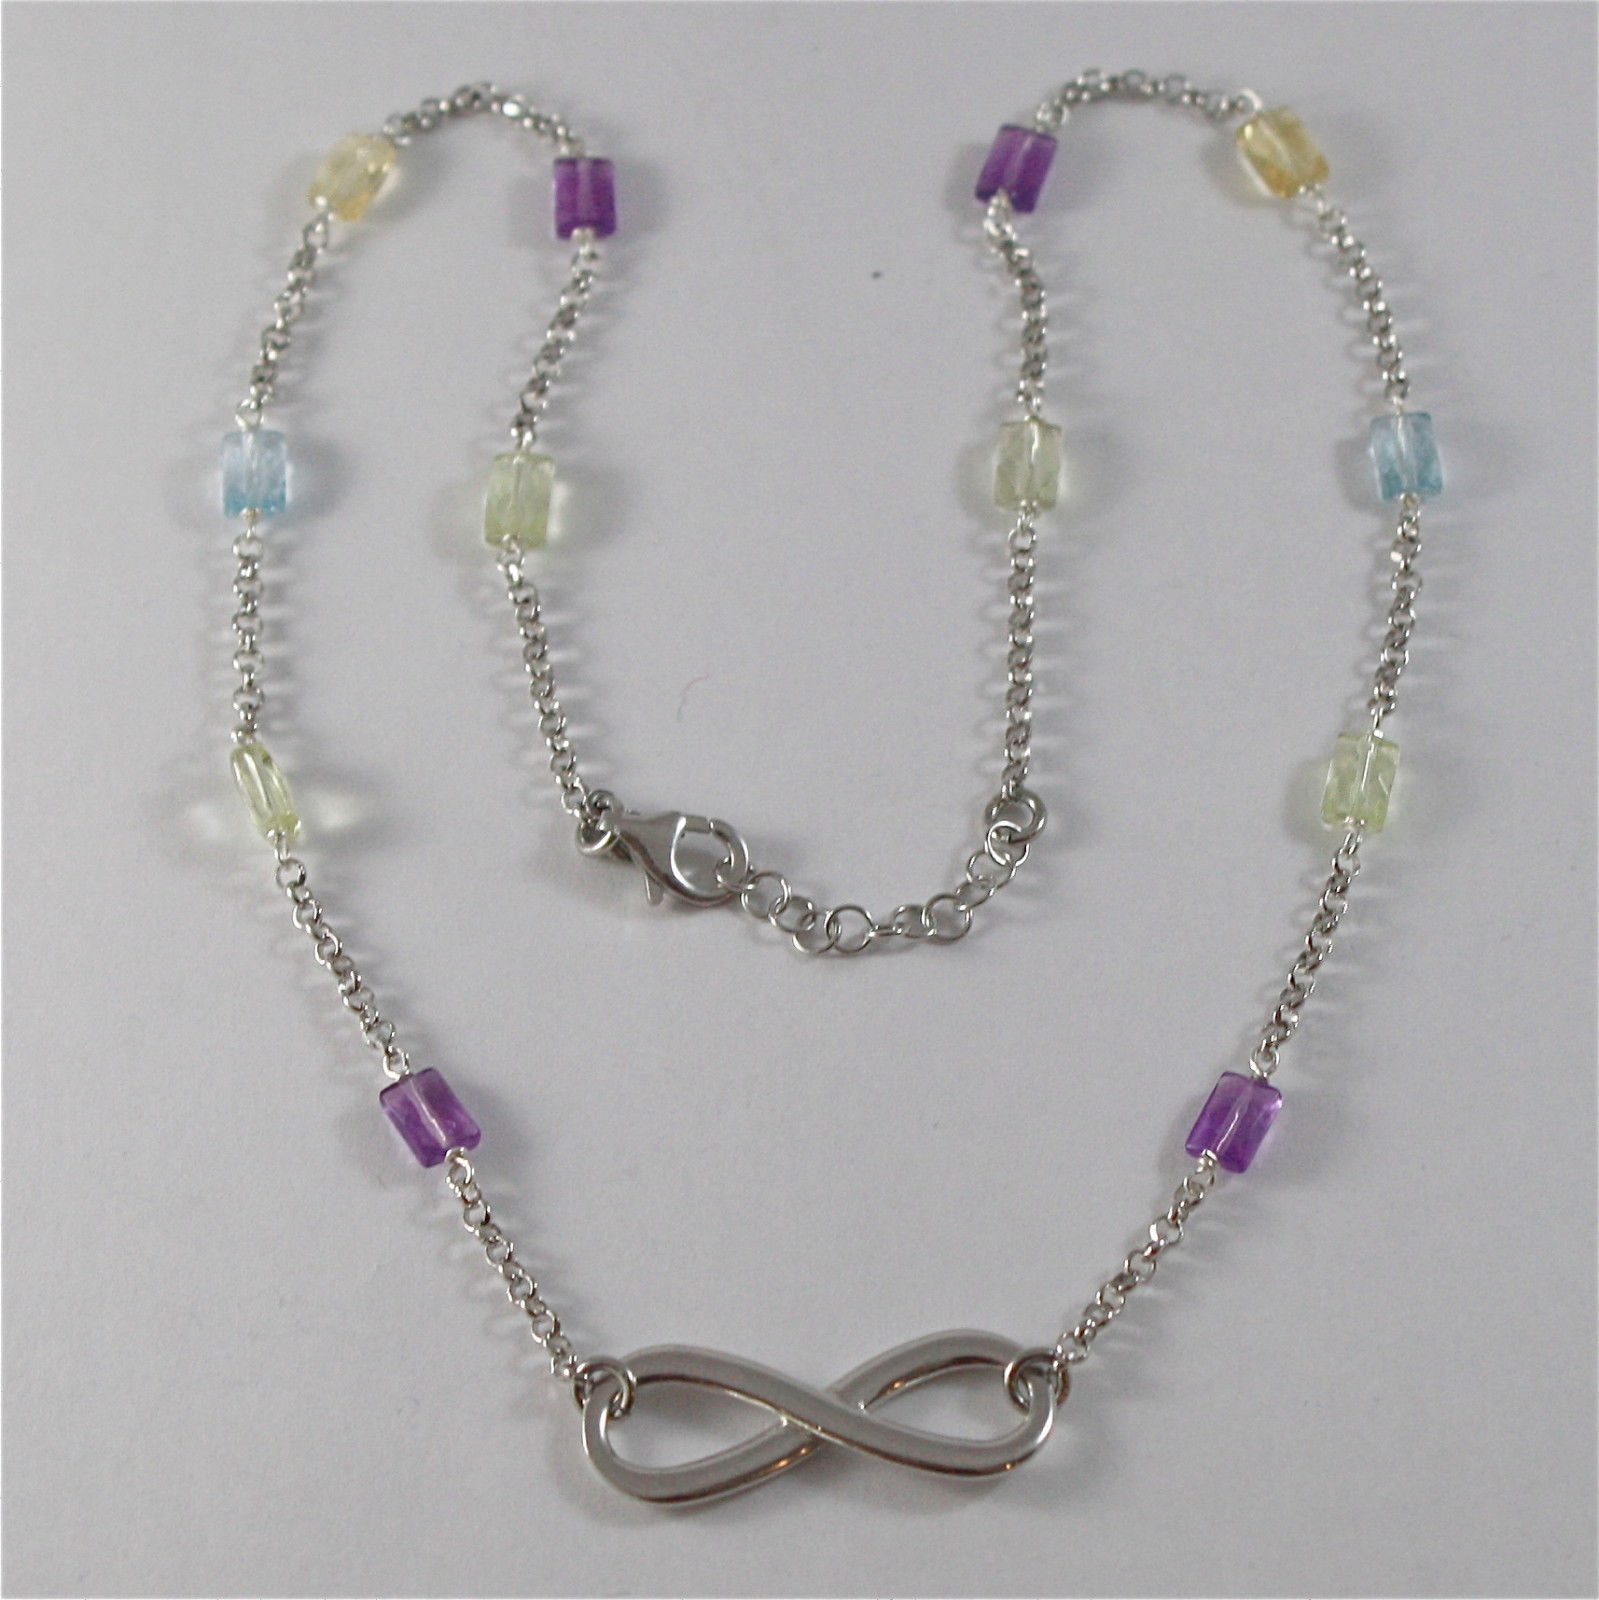 925 SILVER NECKLACE WITH SYMBOL OF INFINITY AND MULTIFACETED STONE MADE IN ITALY